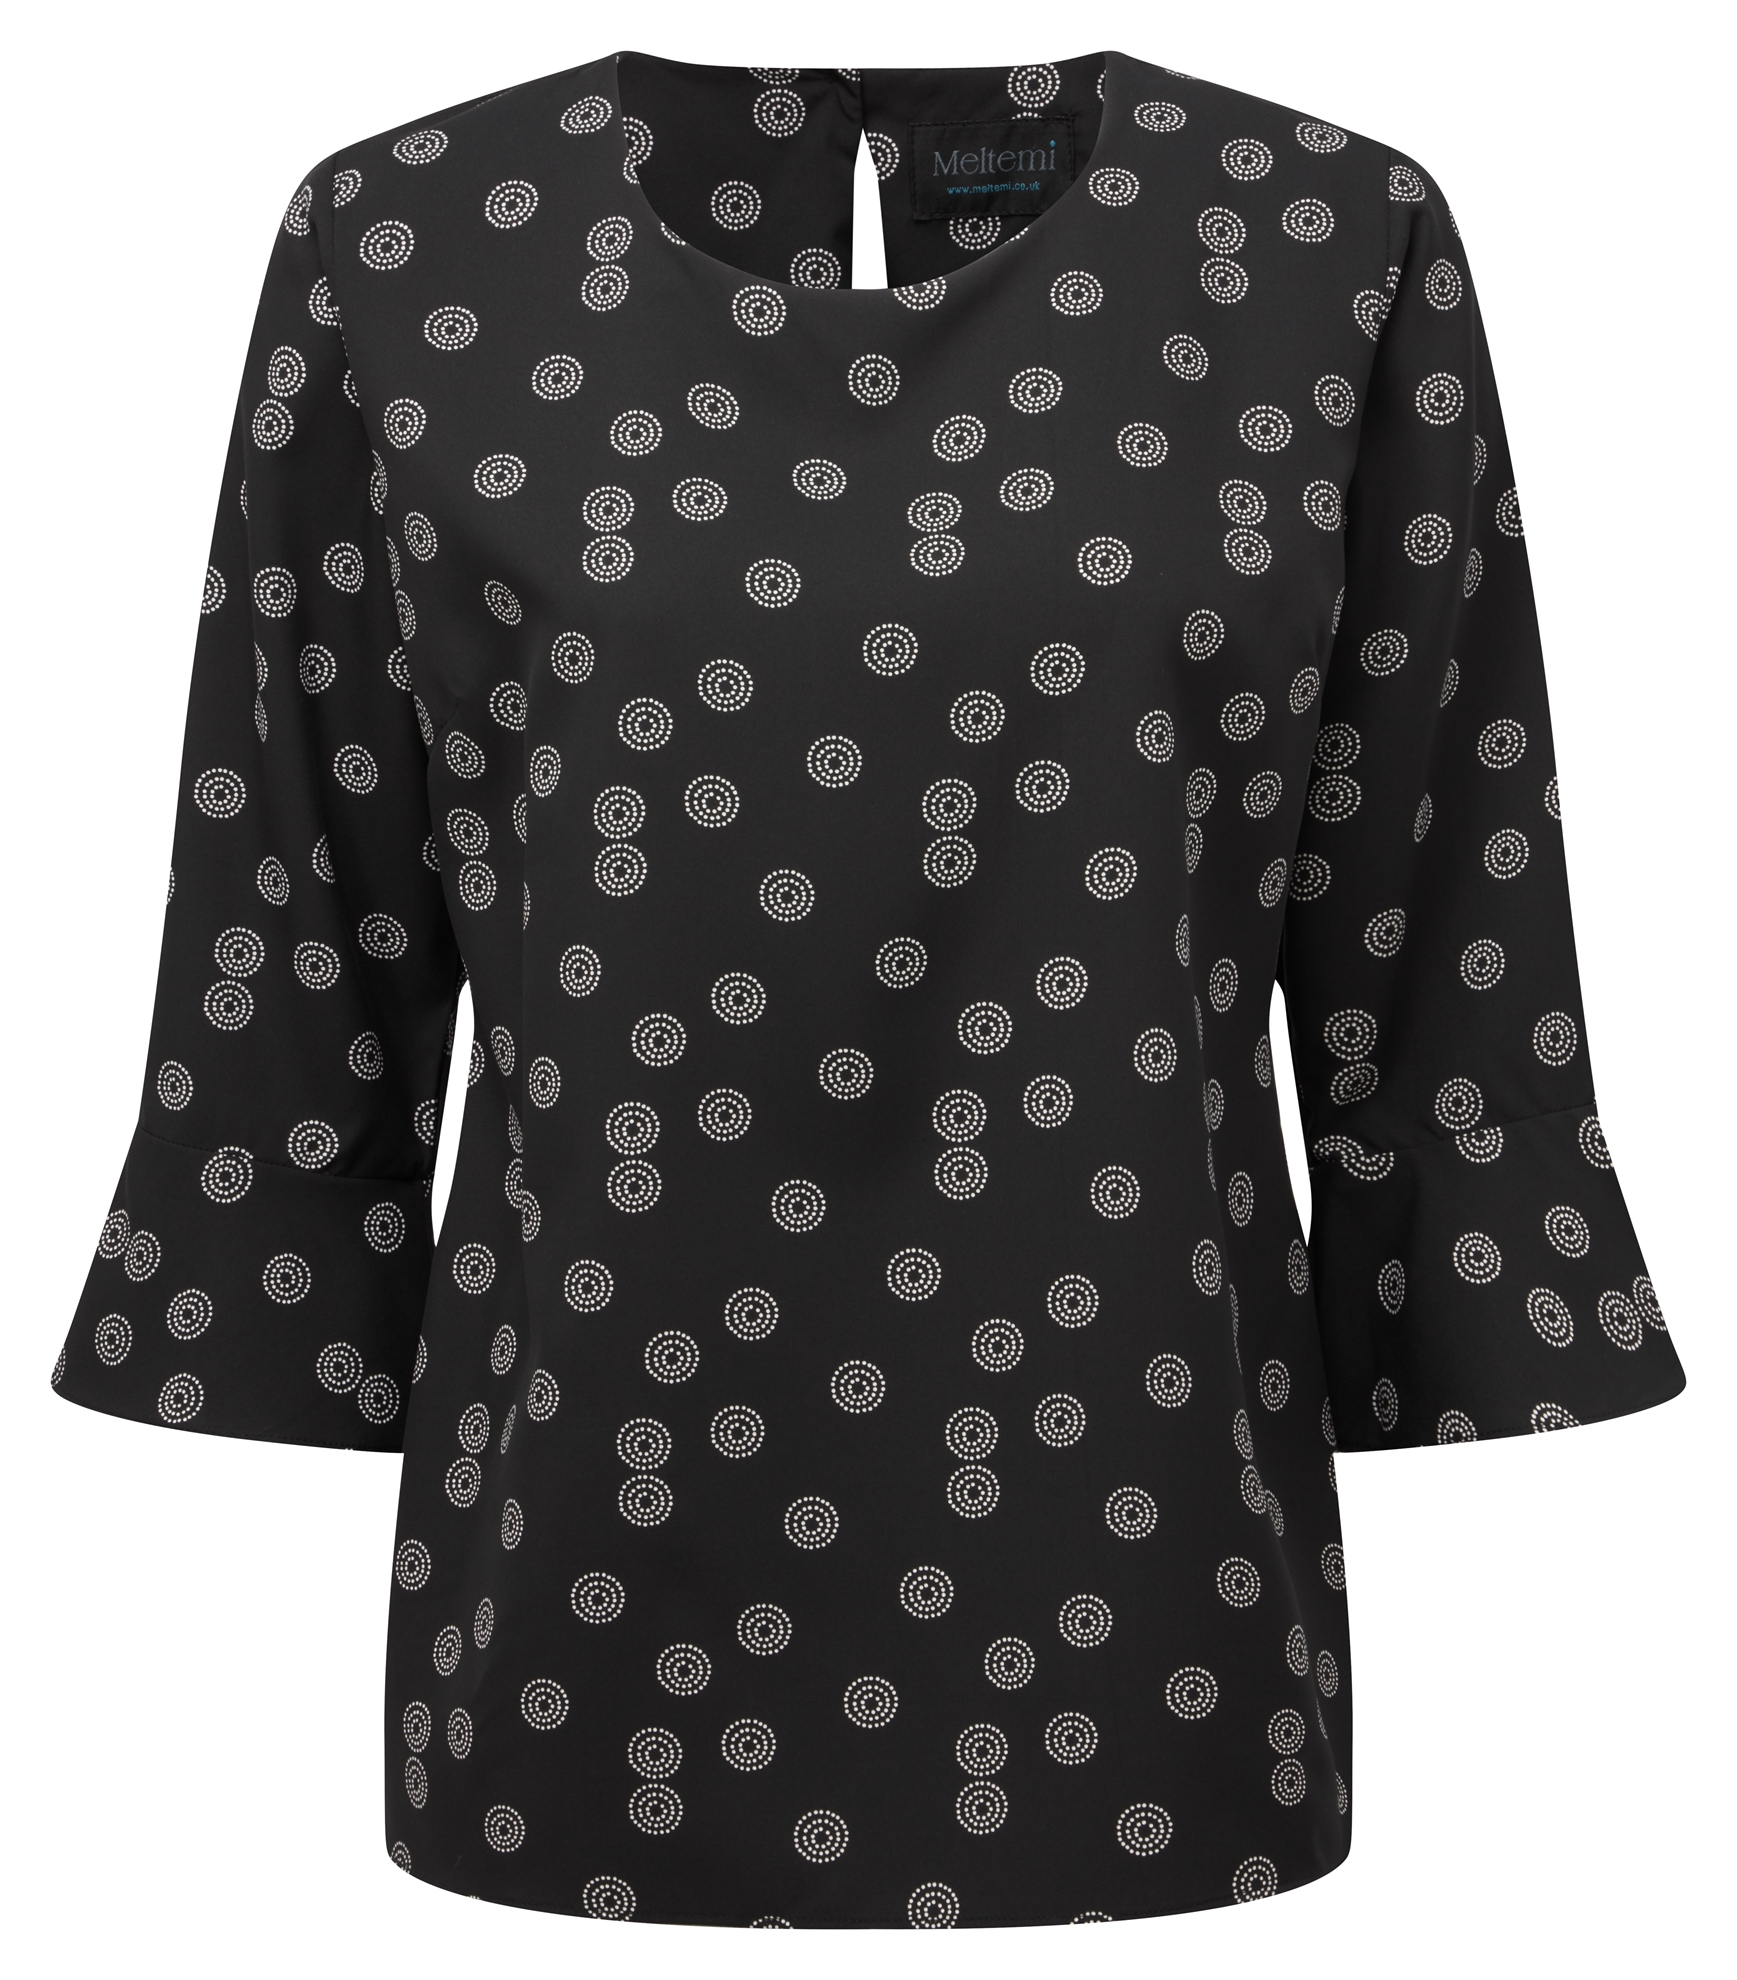 Picture of Semi Fitted CoolWeave Blouse Flute Sleeves - Black/White Sienna Print